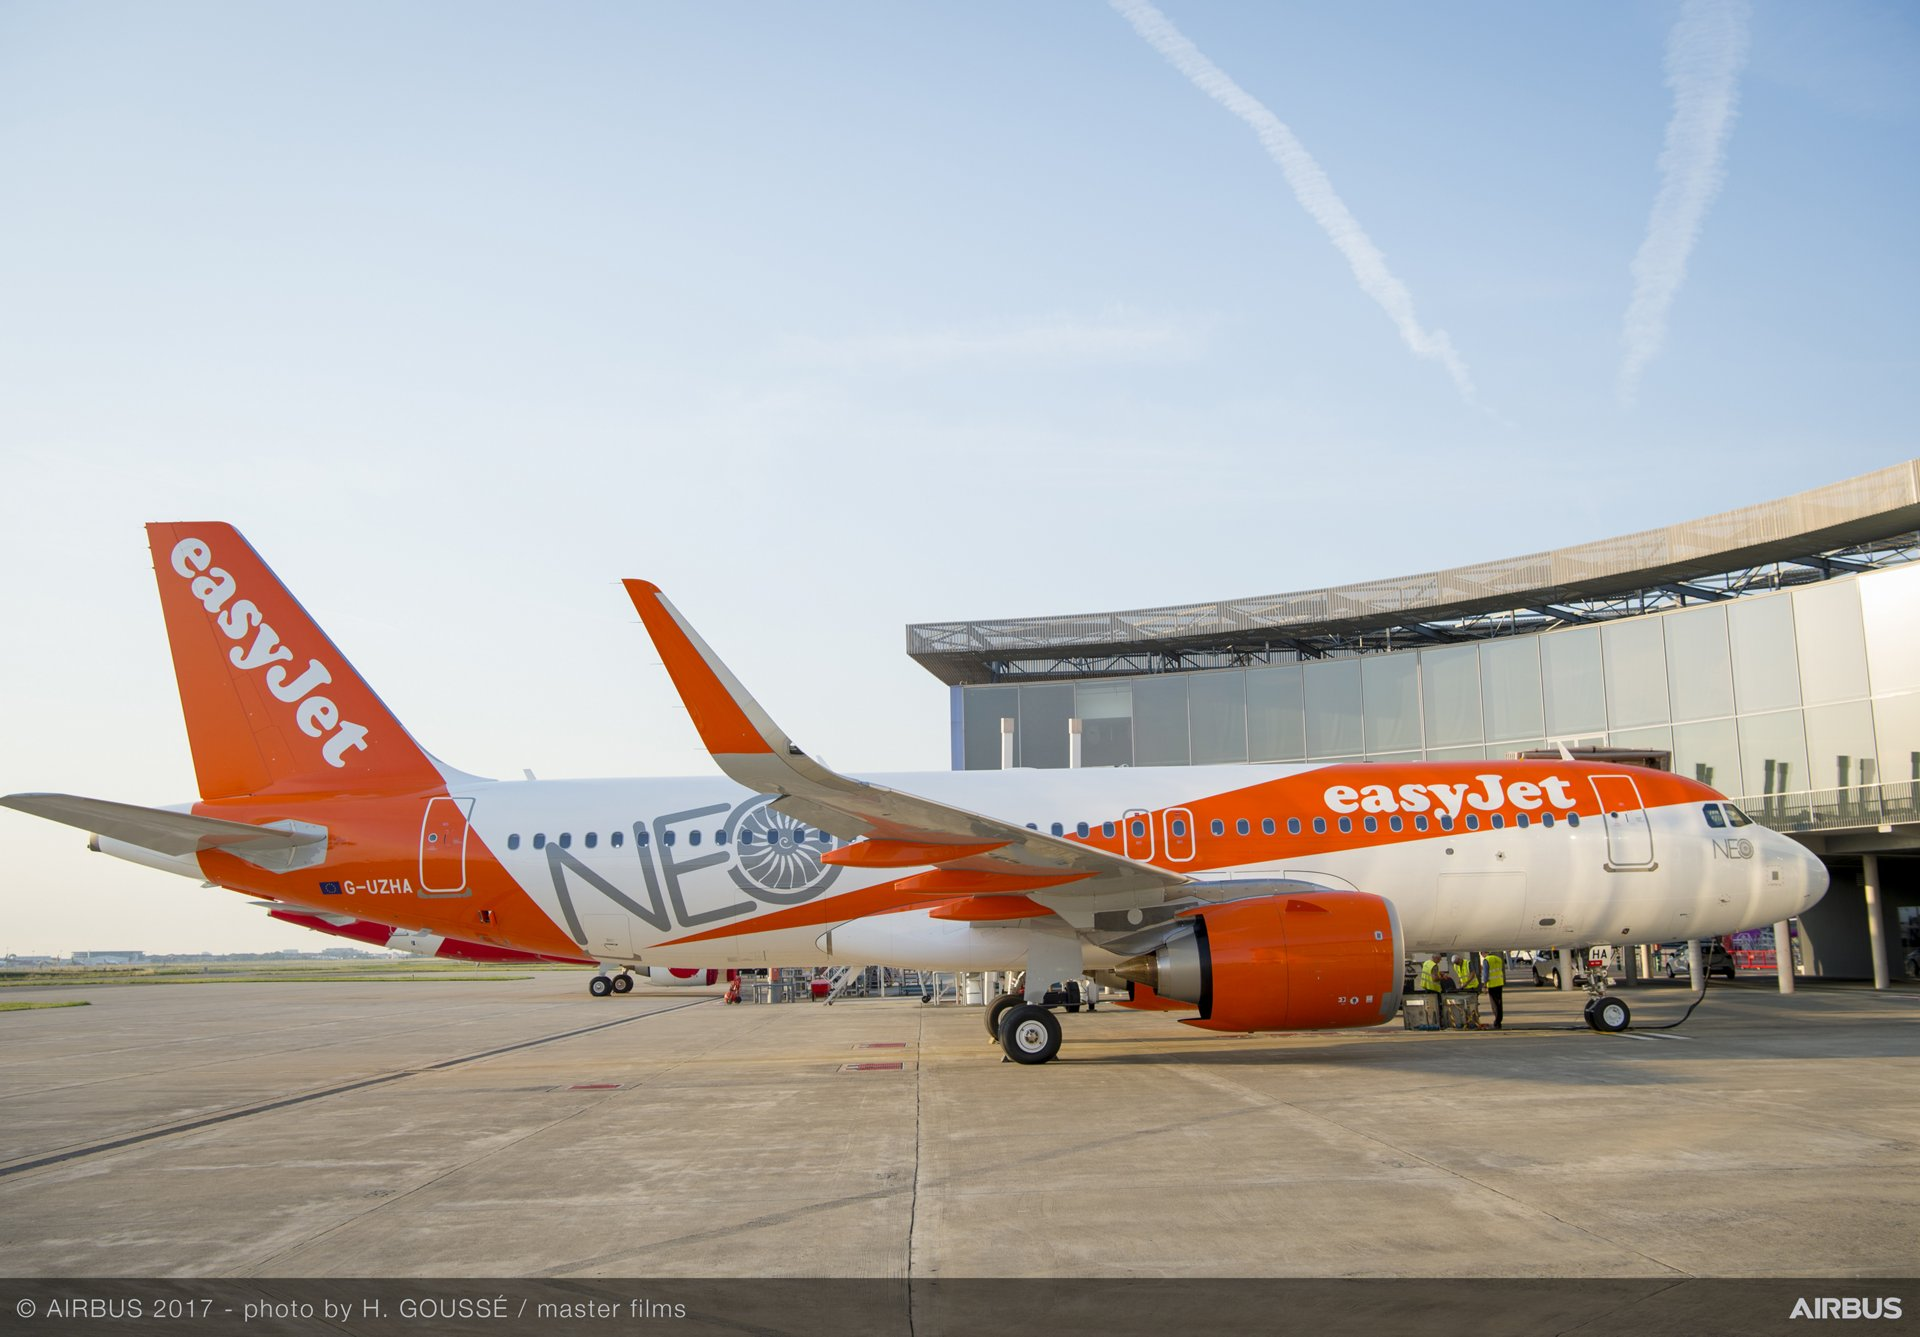 easyJet_First A320neo delivery 6